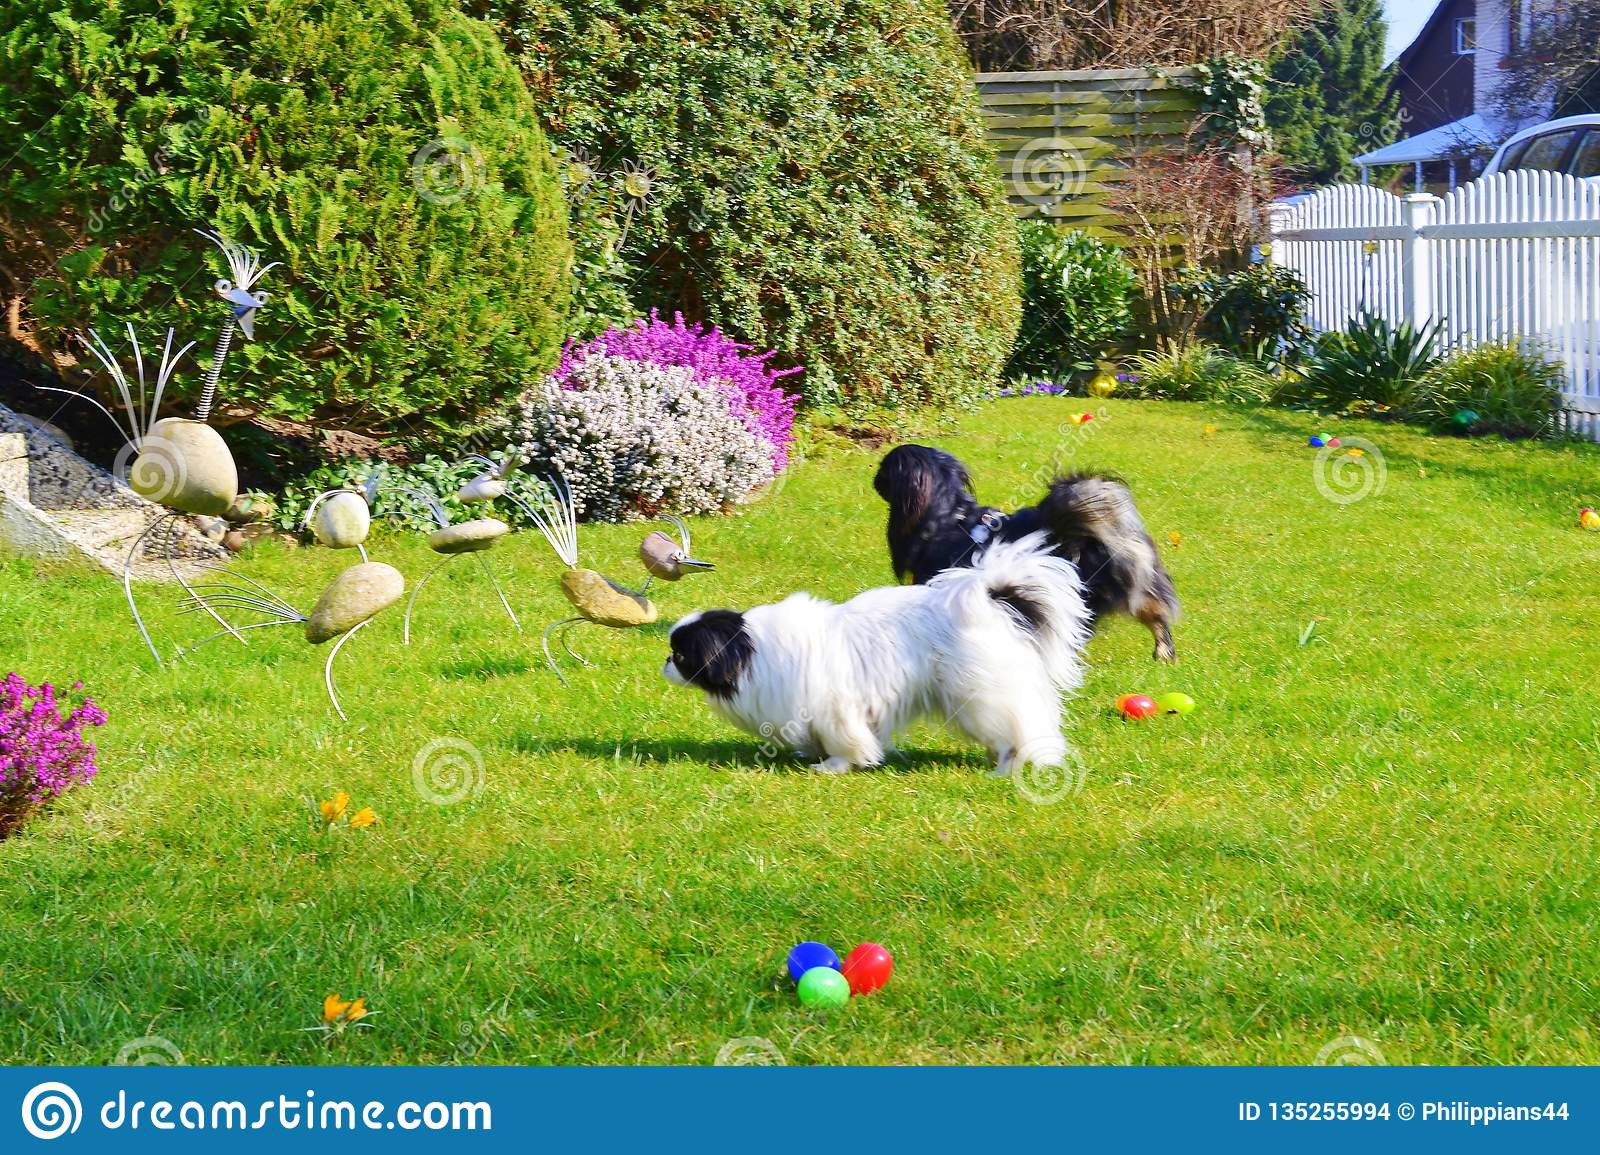 Adorable Pekinese couple, white and black, short and long hair breed playing together in garden, Pekingese dog puppy